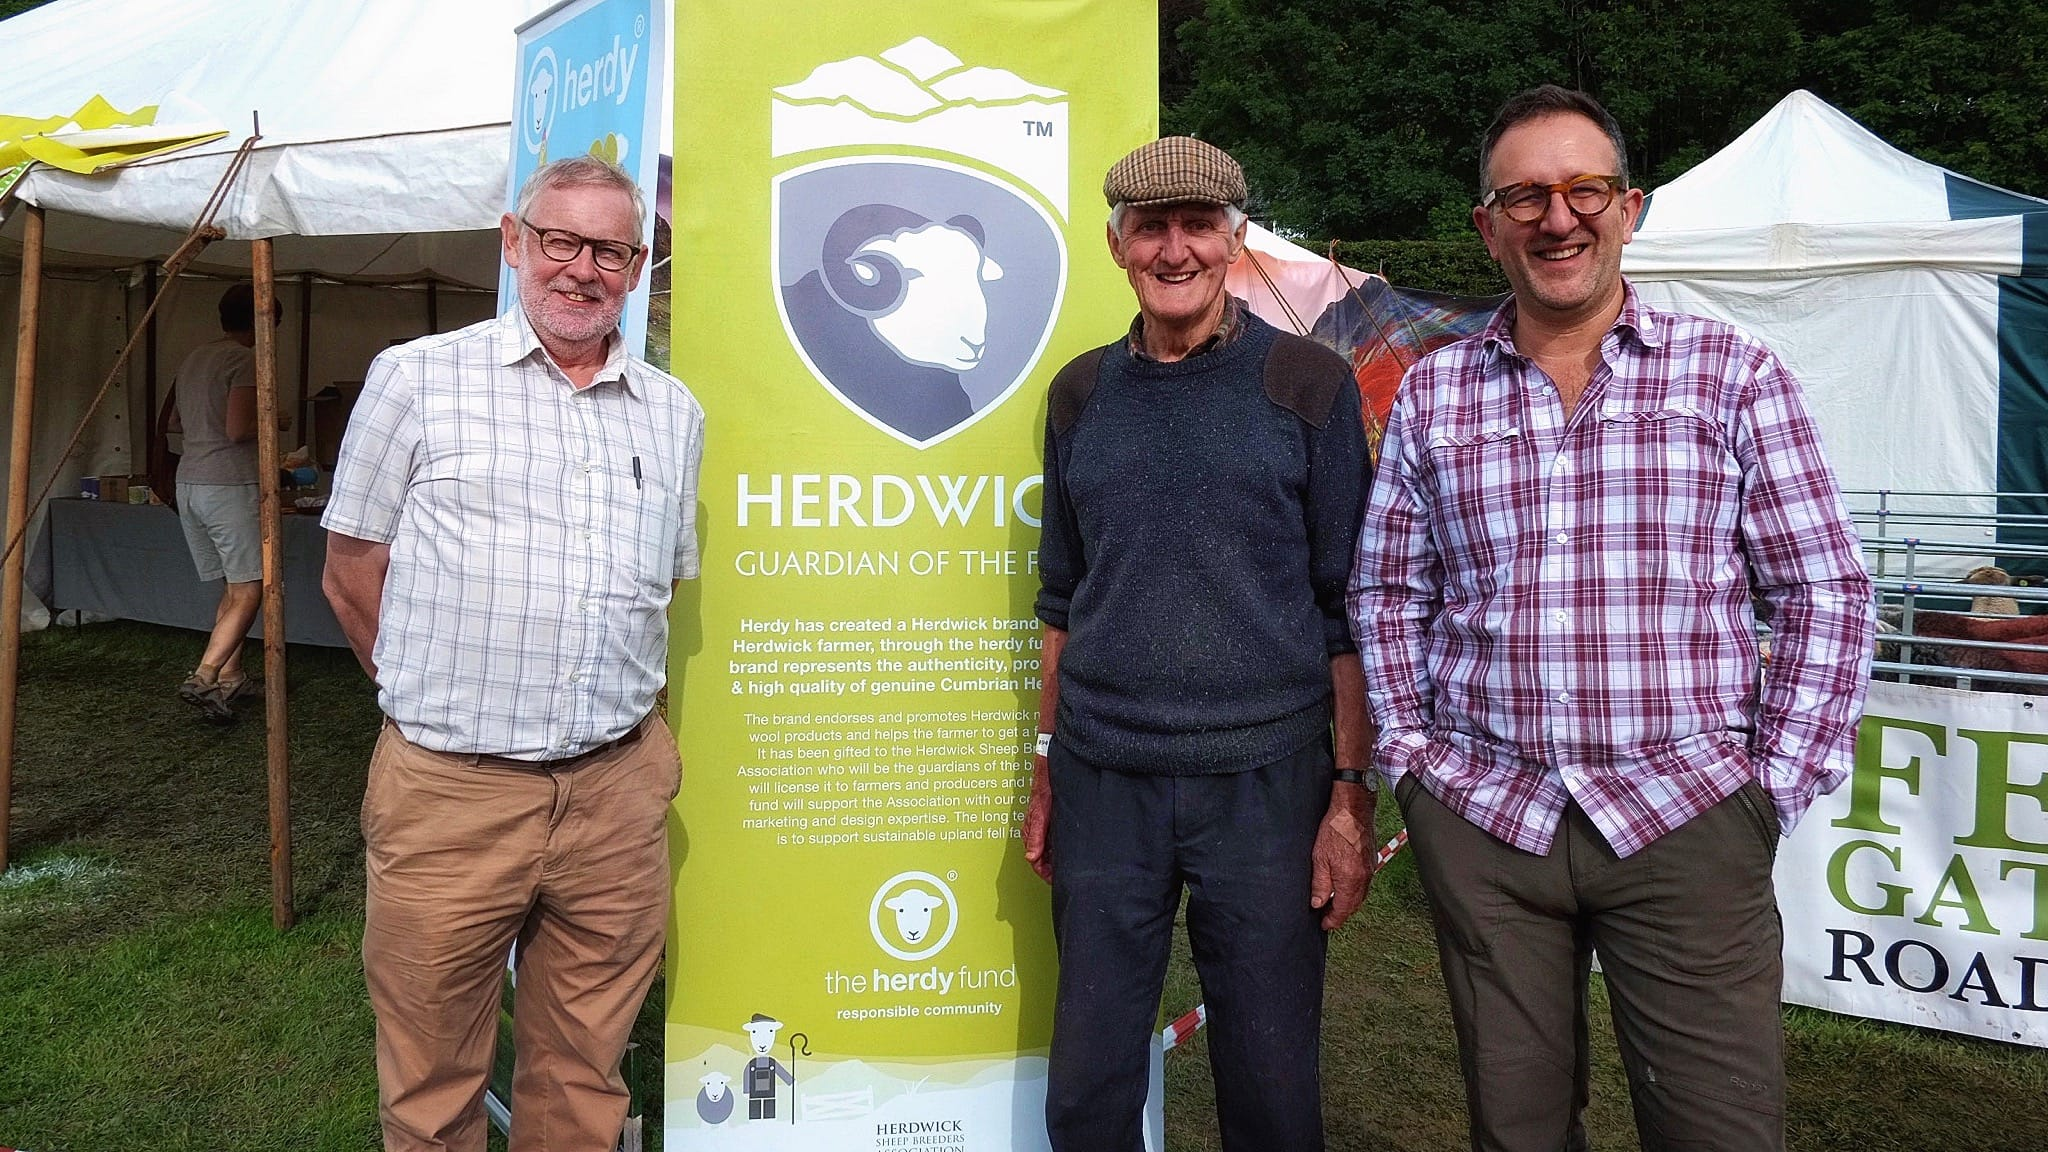 Where To Get Herdwick Products